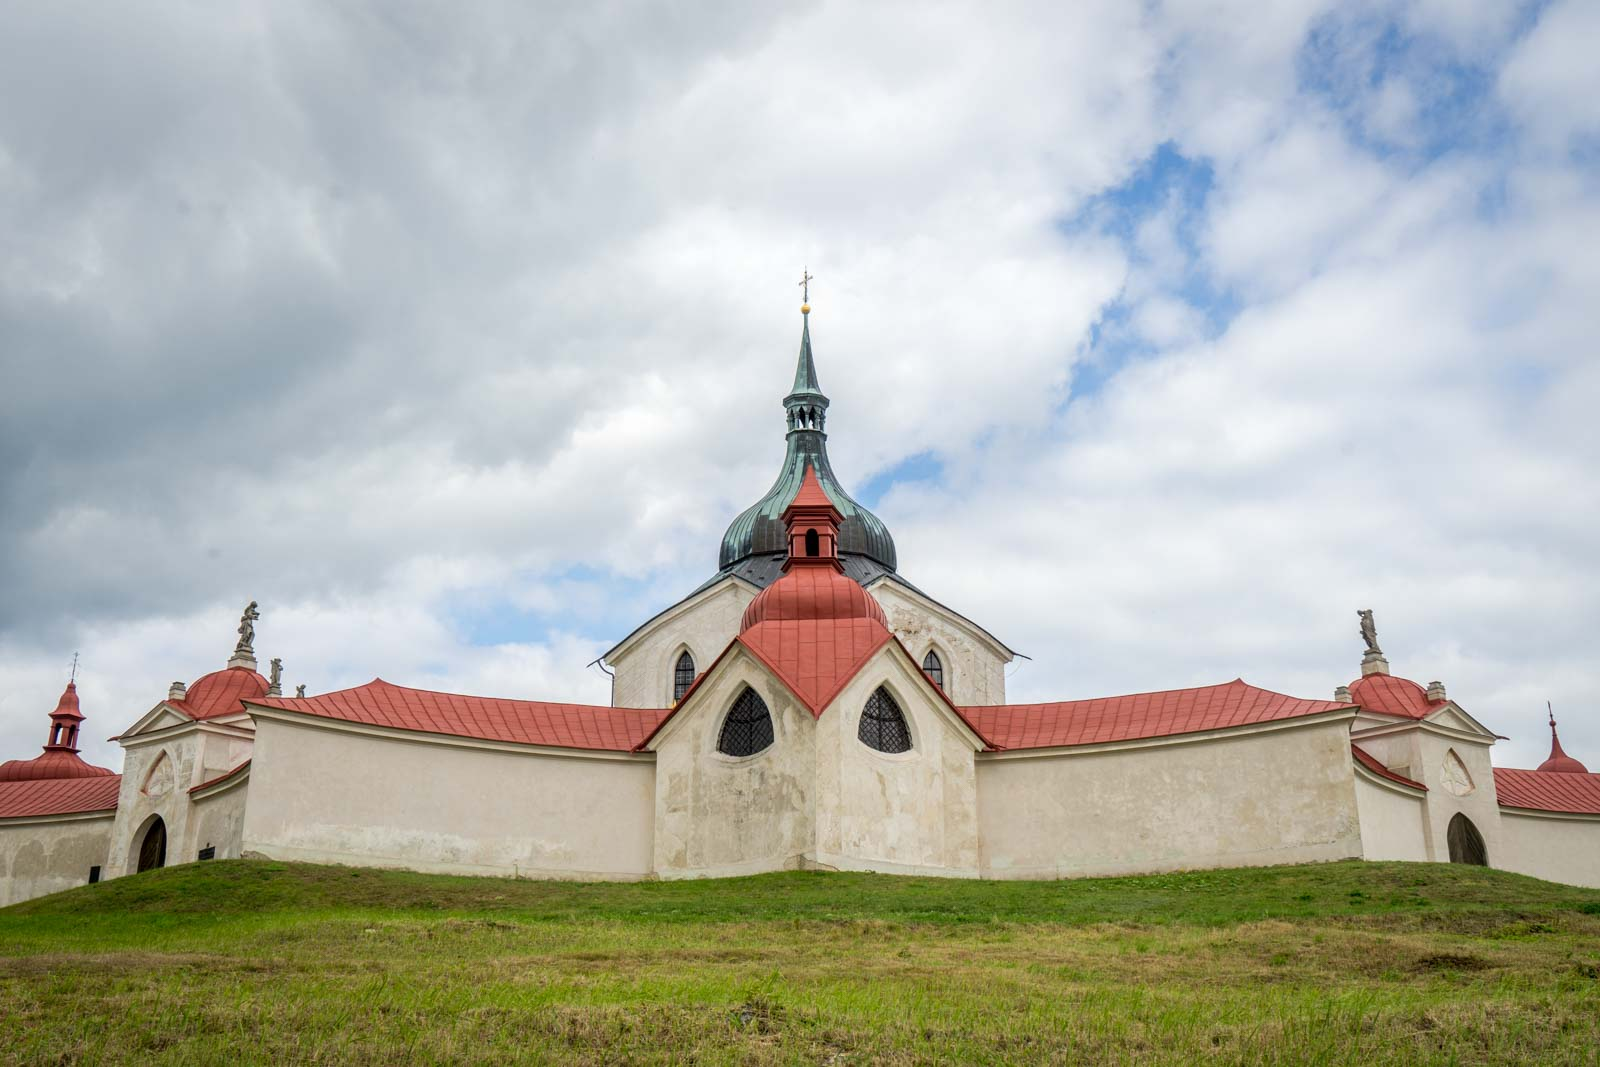 Pilgrimage Church of Saint John of Nepomuk, Zelená hora, Czech Republic